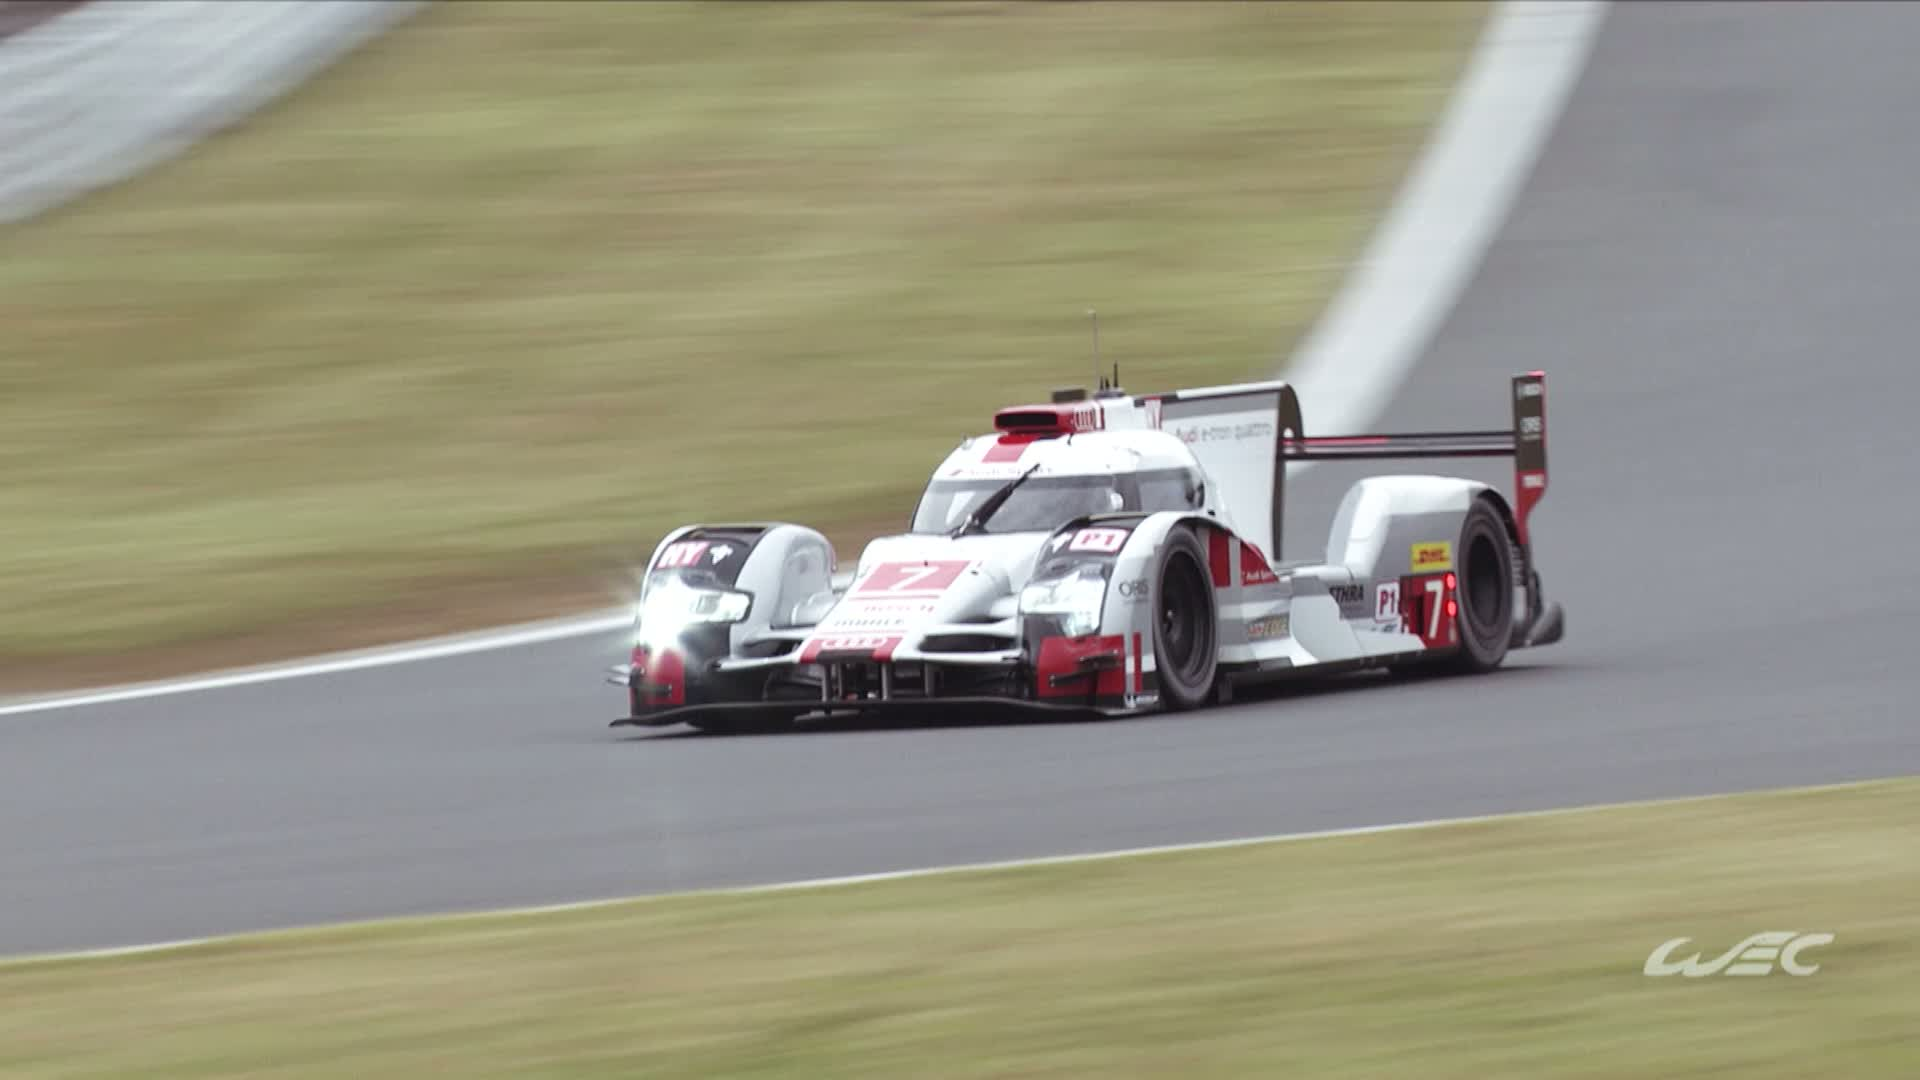 60 Seconds of Audi Sport 91/2015 - WEC Fuji, Qualifying